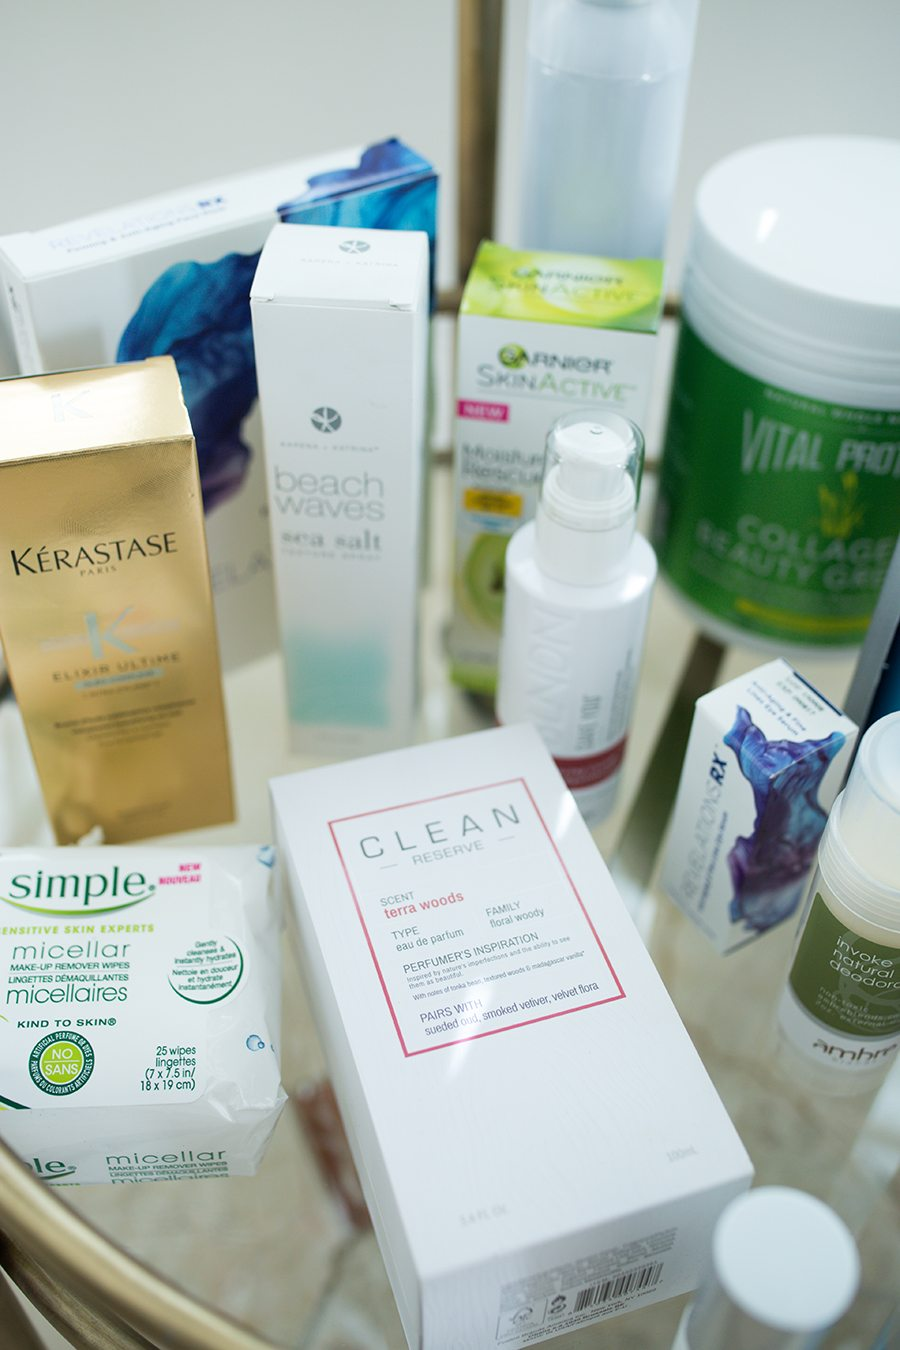 BEAUTY AND WELLNESS GIVEAWAY 12 by the skinny confidential